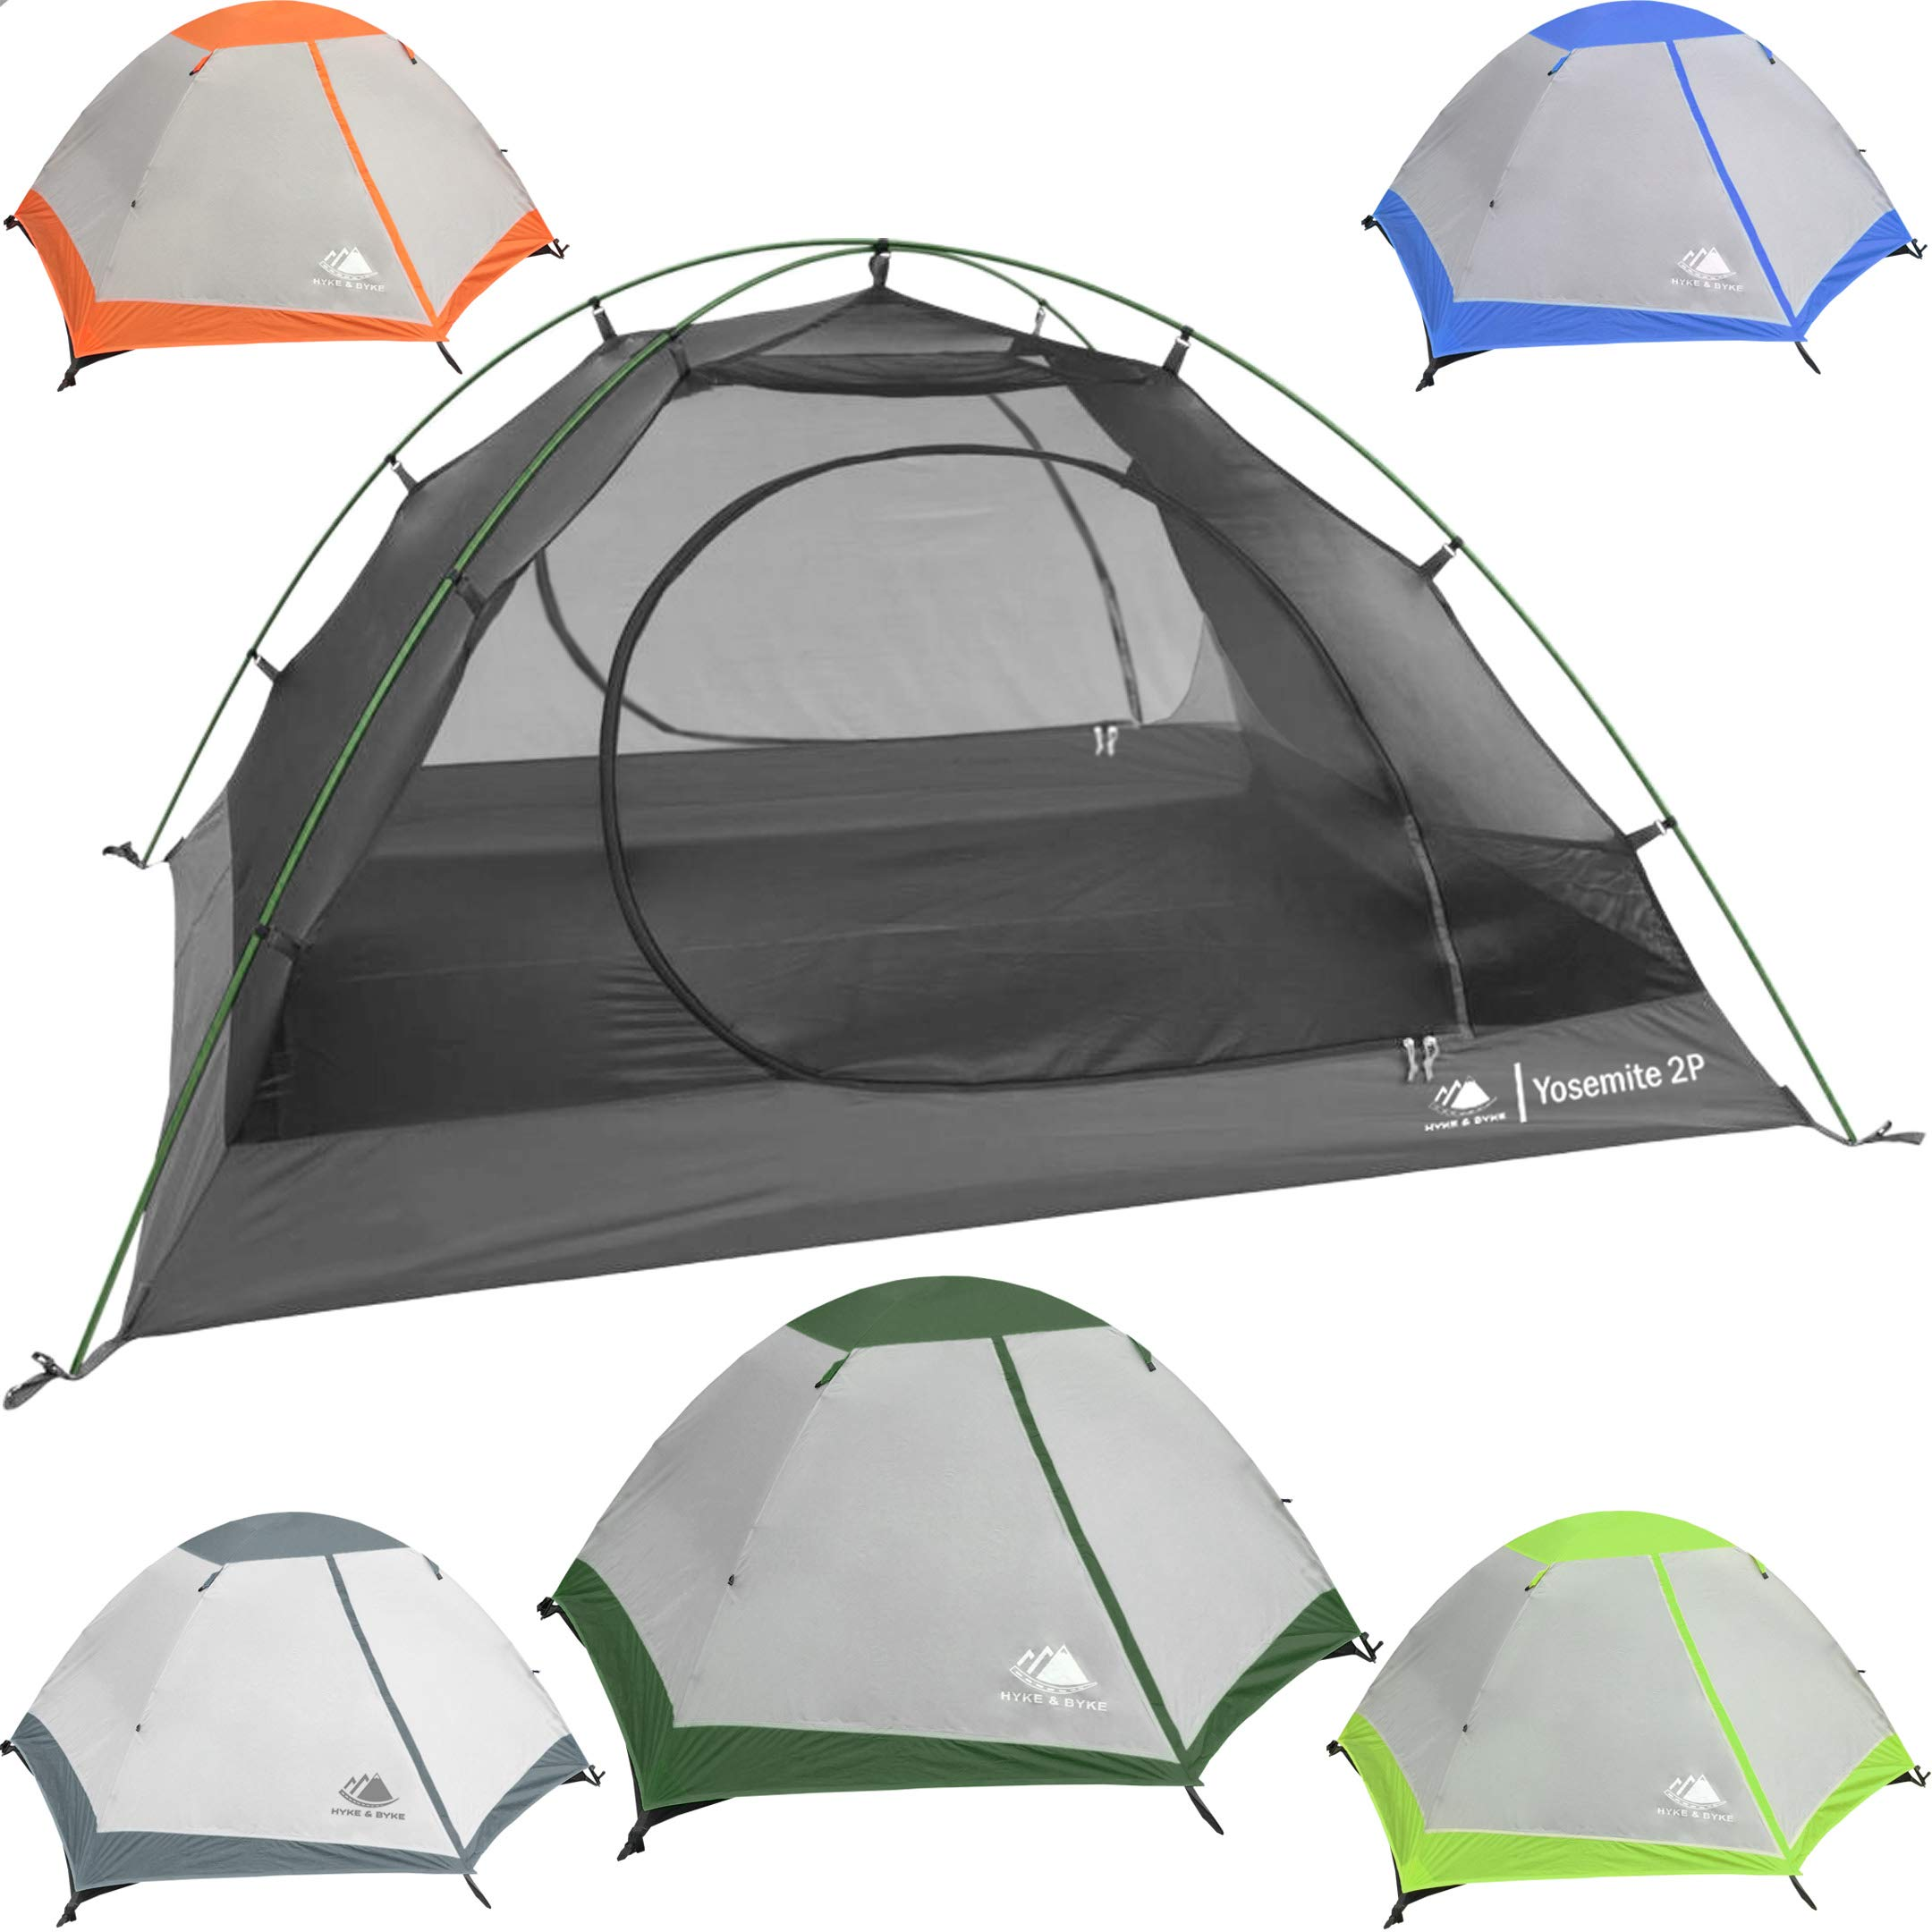 2 Person Backpacking Tent with Footprint - Lightweight Yosemite Two Man 3 Season Ultralight, Waterproof, Ultra Compact 2p Freestanding Backpack Tents for Camping and Hiking, Hyke & Byke (Forest Green) by Hyke & Byke